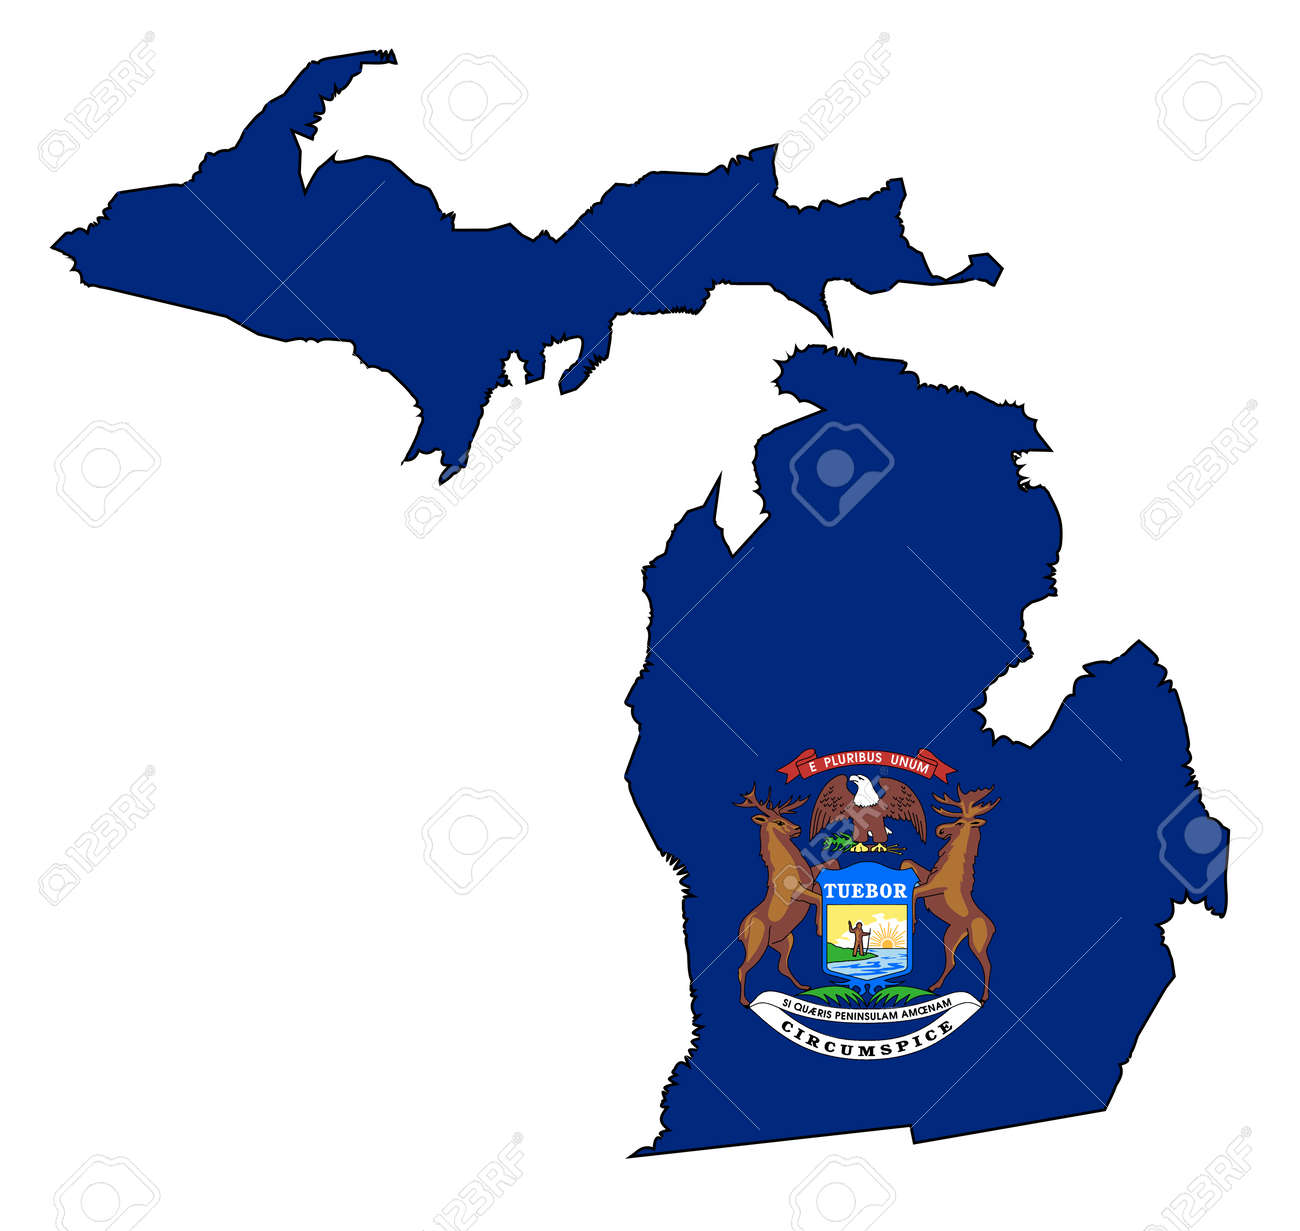 Outline Map Of The State Of Michigan With Map Inset Royalty Free ...